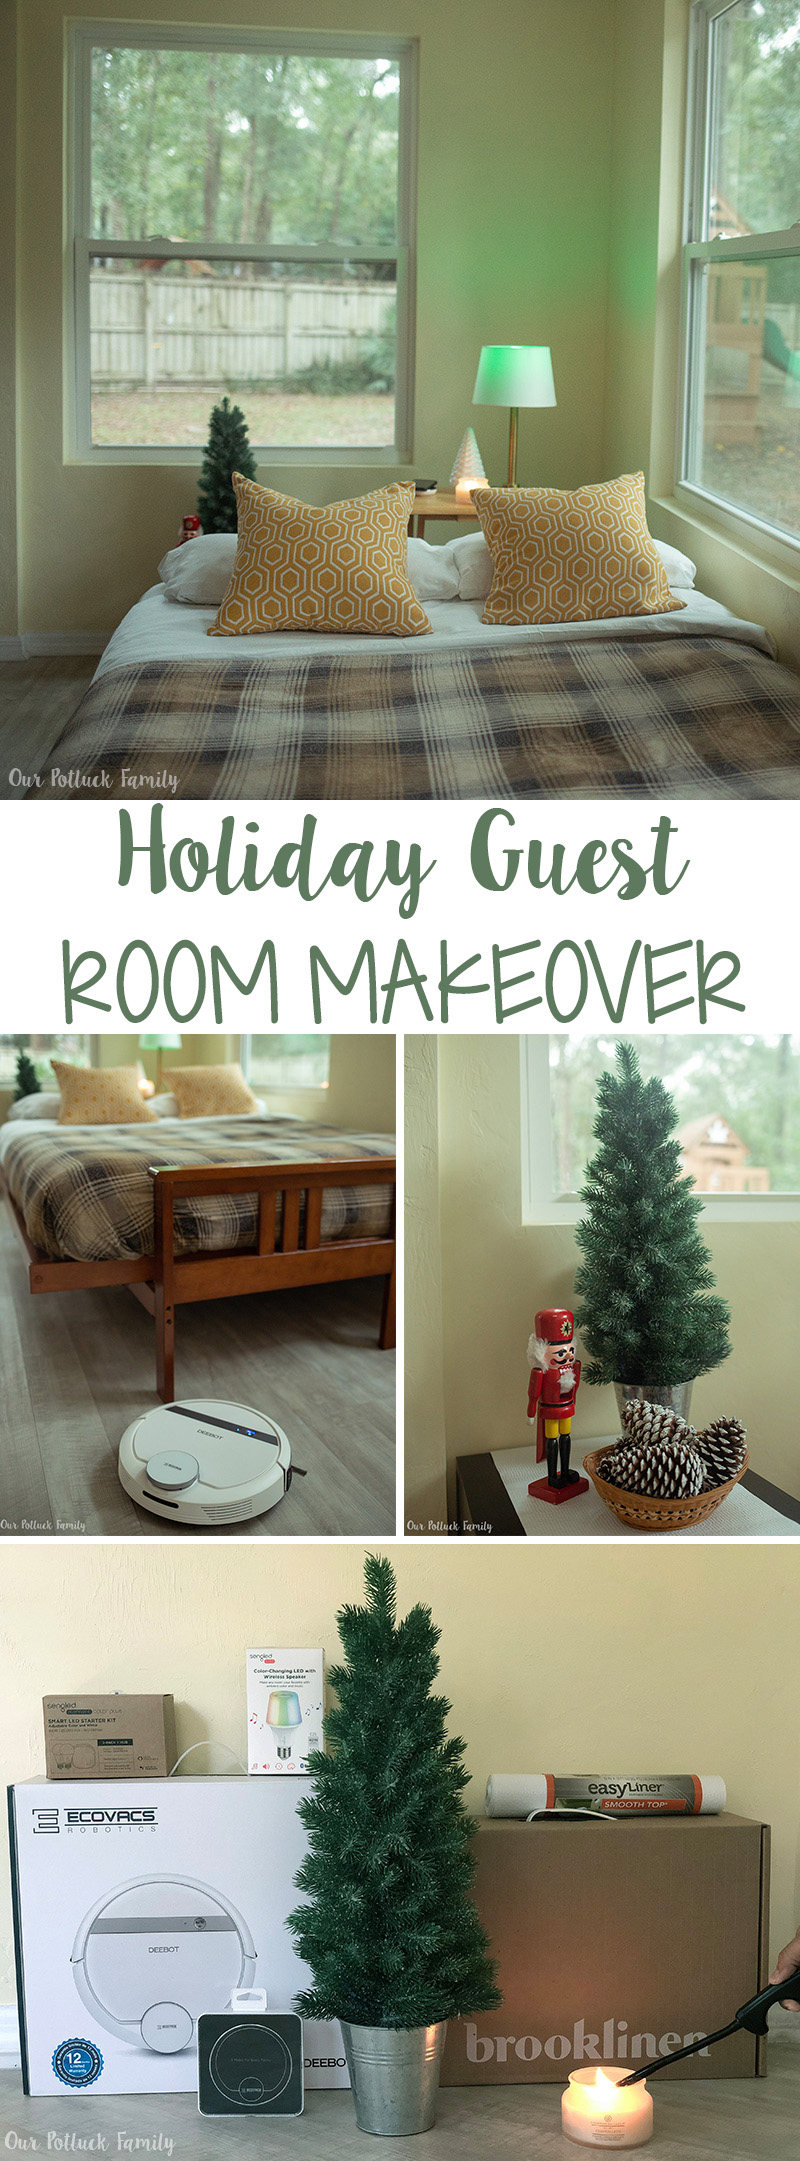 Holiday Guest Room Makeover